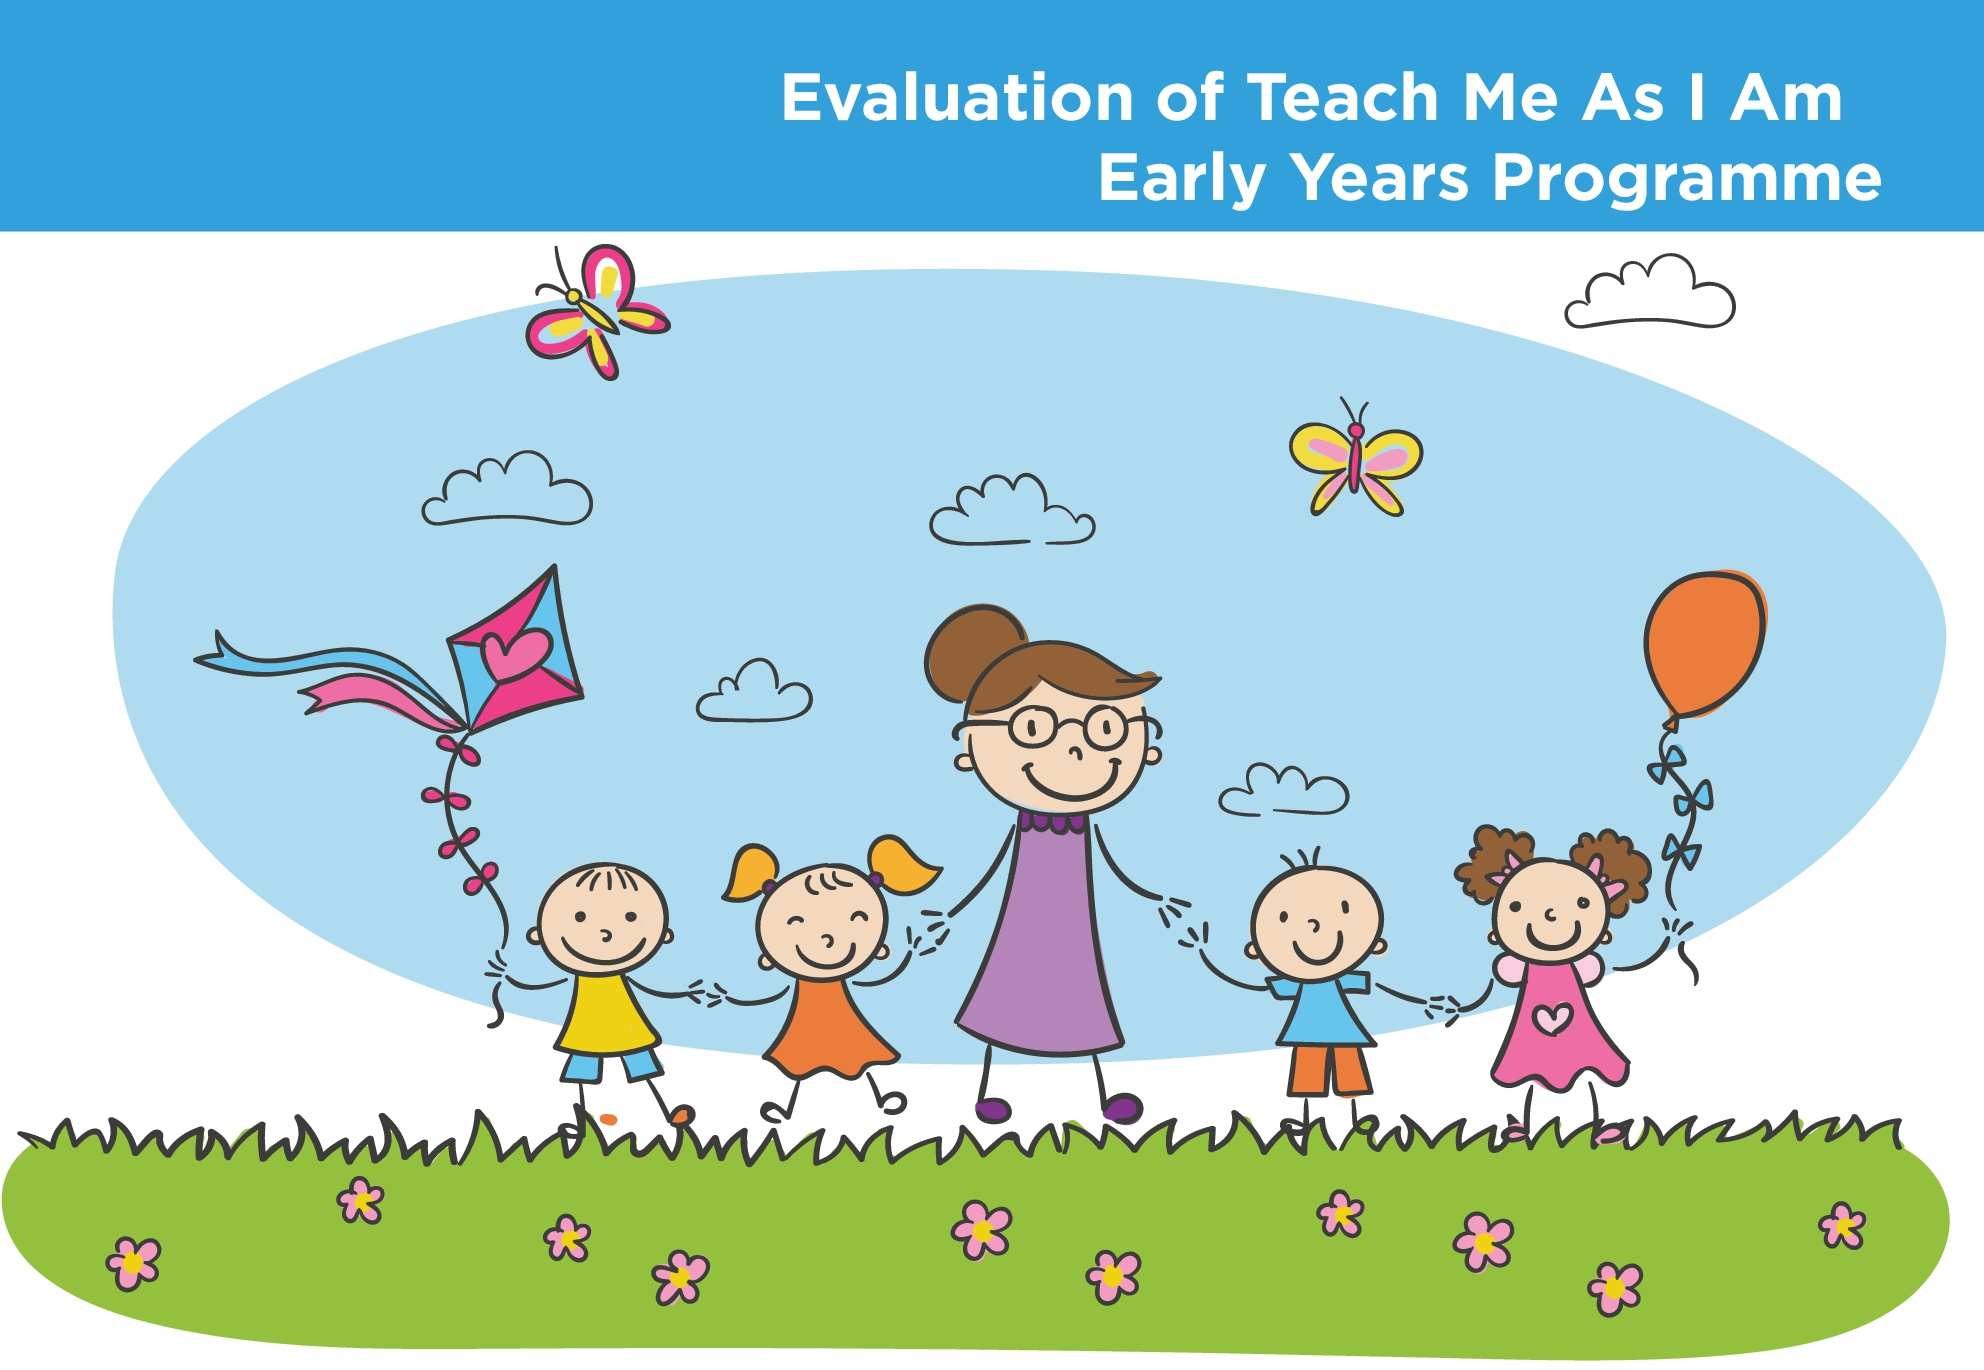 evaluation of Teach Me As I Am Early Years Programme slider image_AsIAm Ireland's National Autism Charity and Advocacy Organisation